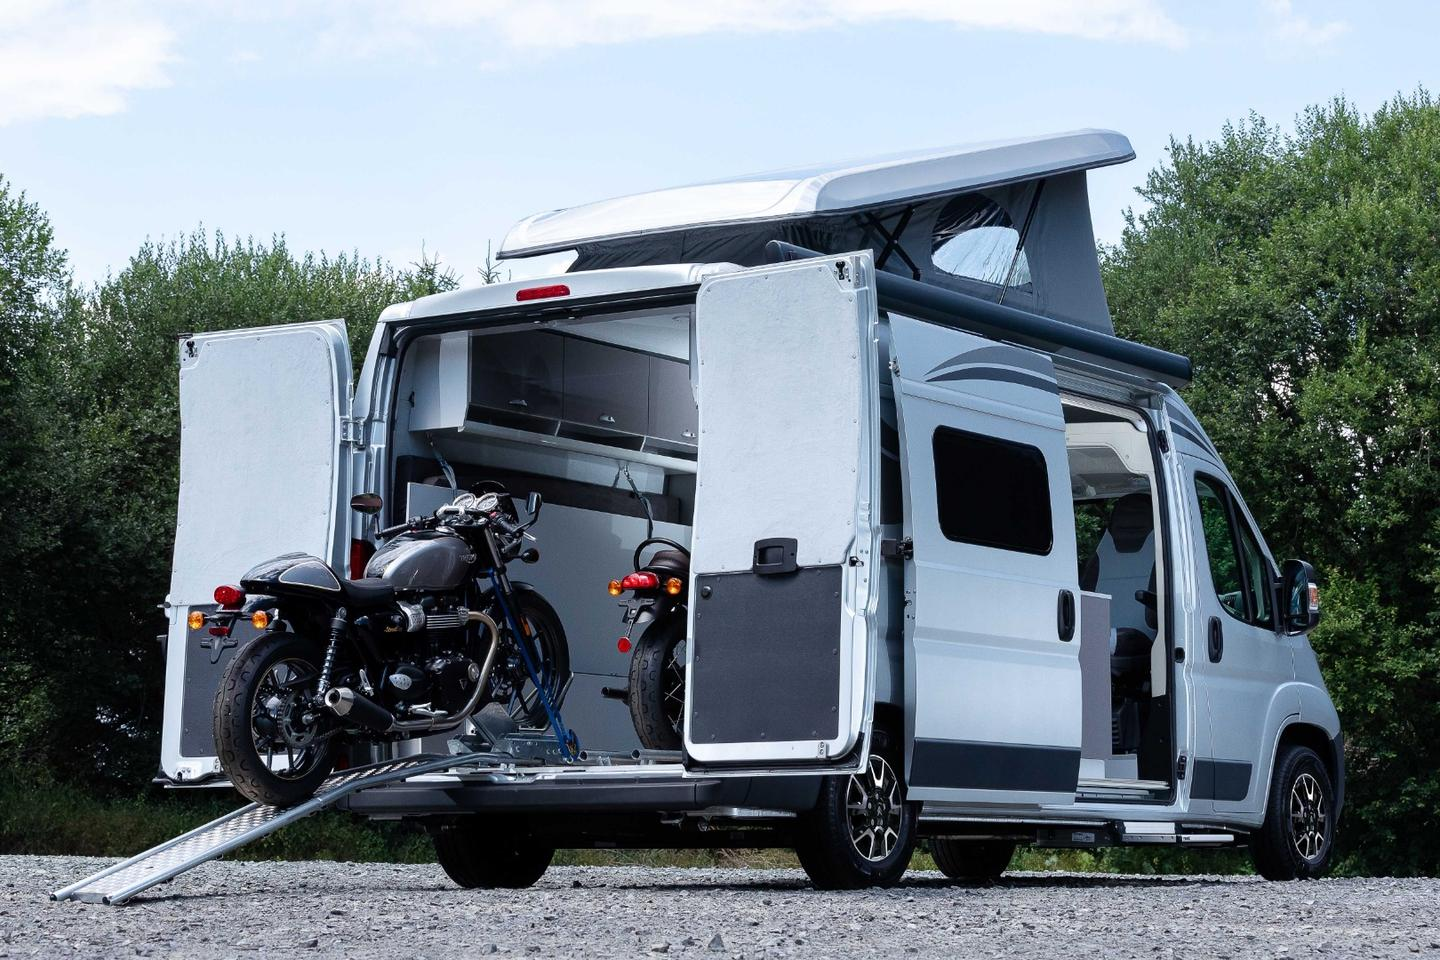 Along with the previously announced Type H WildCamp, Citroën will debut the new Jumper Biker Solution at the Düsseldorf Caravan Salon this month